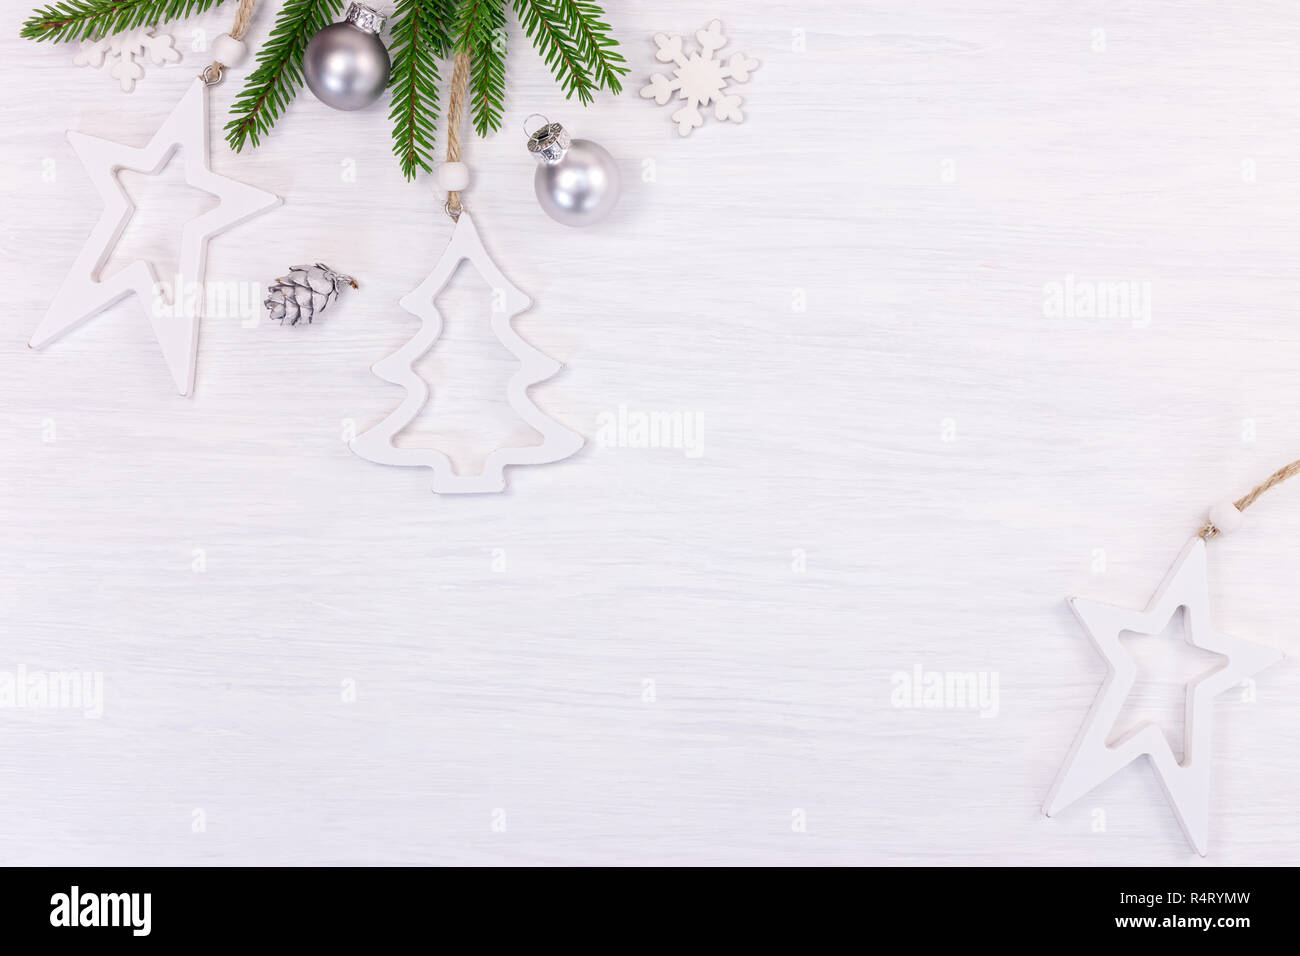 f7f1dfec9cd8 christmas holidays background with green fir tree branch, decorative silver  balls and white wooden stars. top view